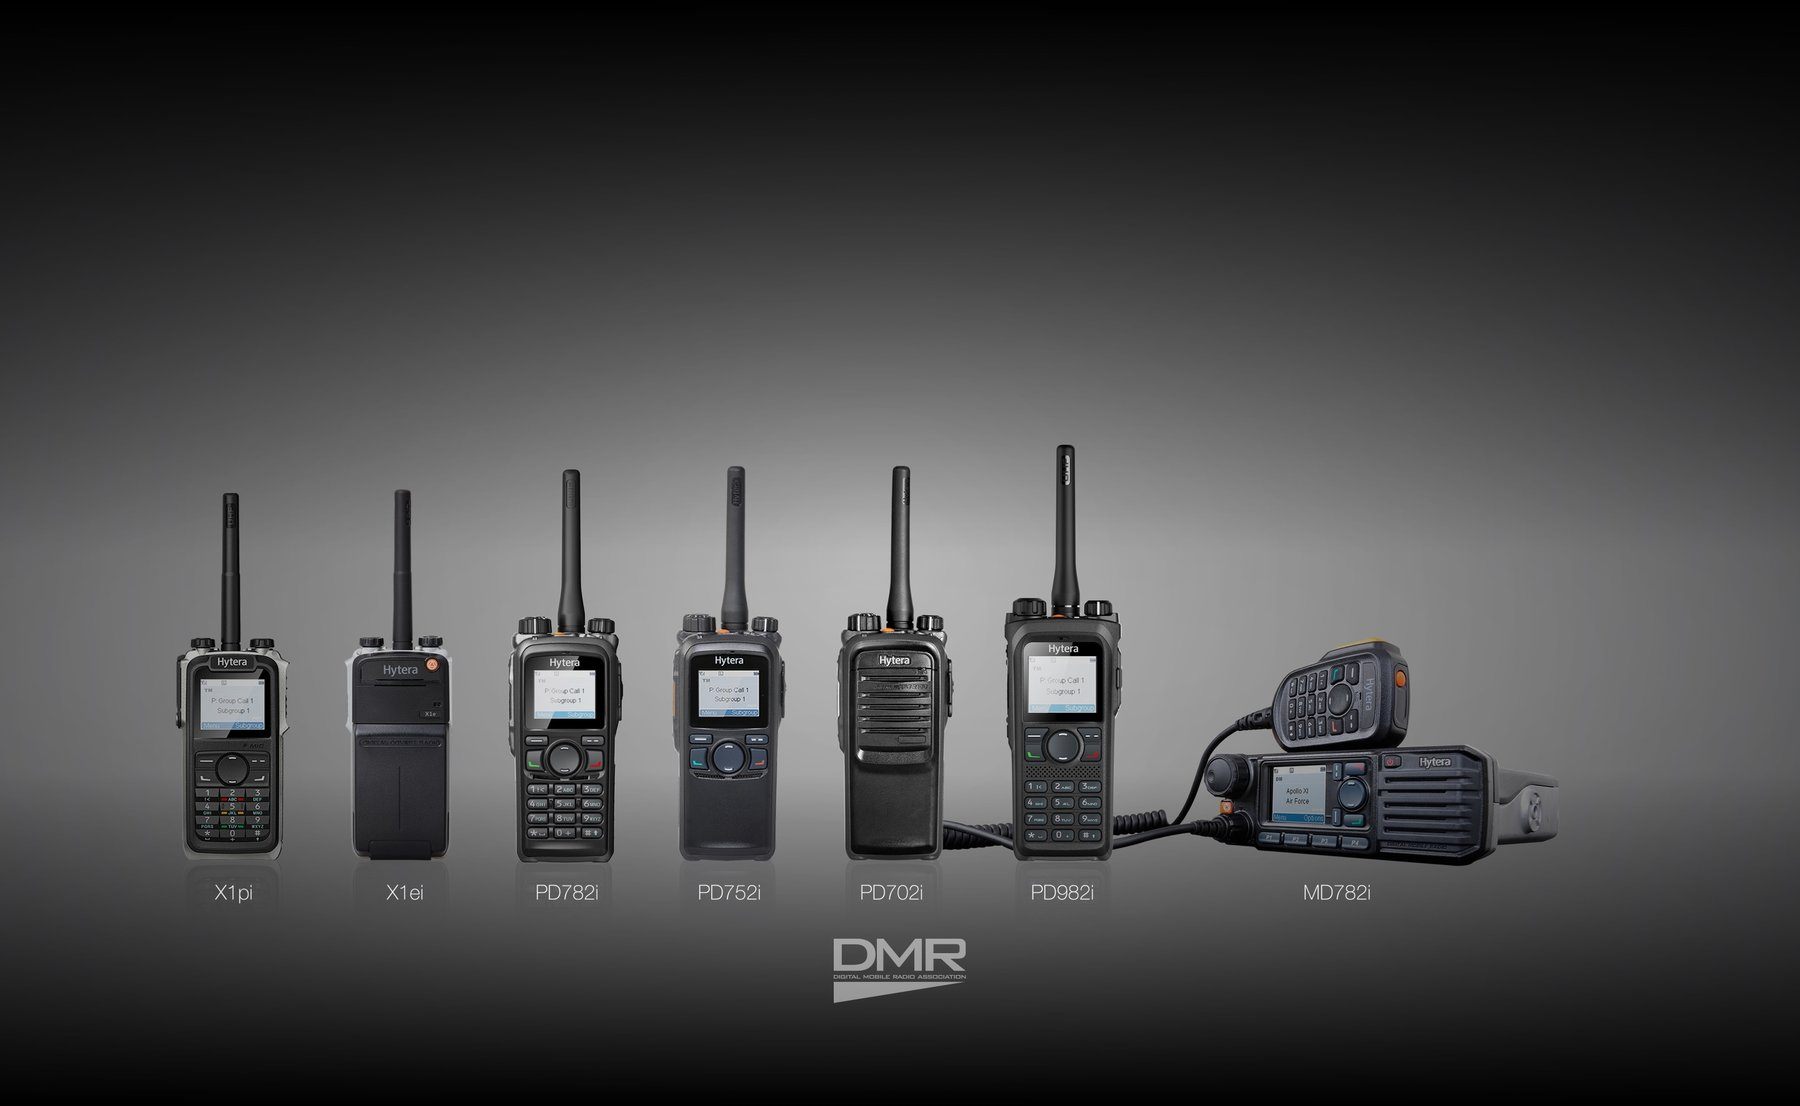 Advanced DMR 2-way radio systems